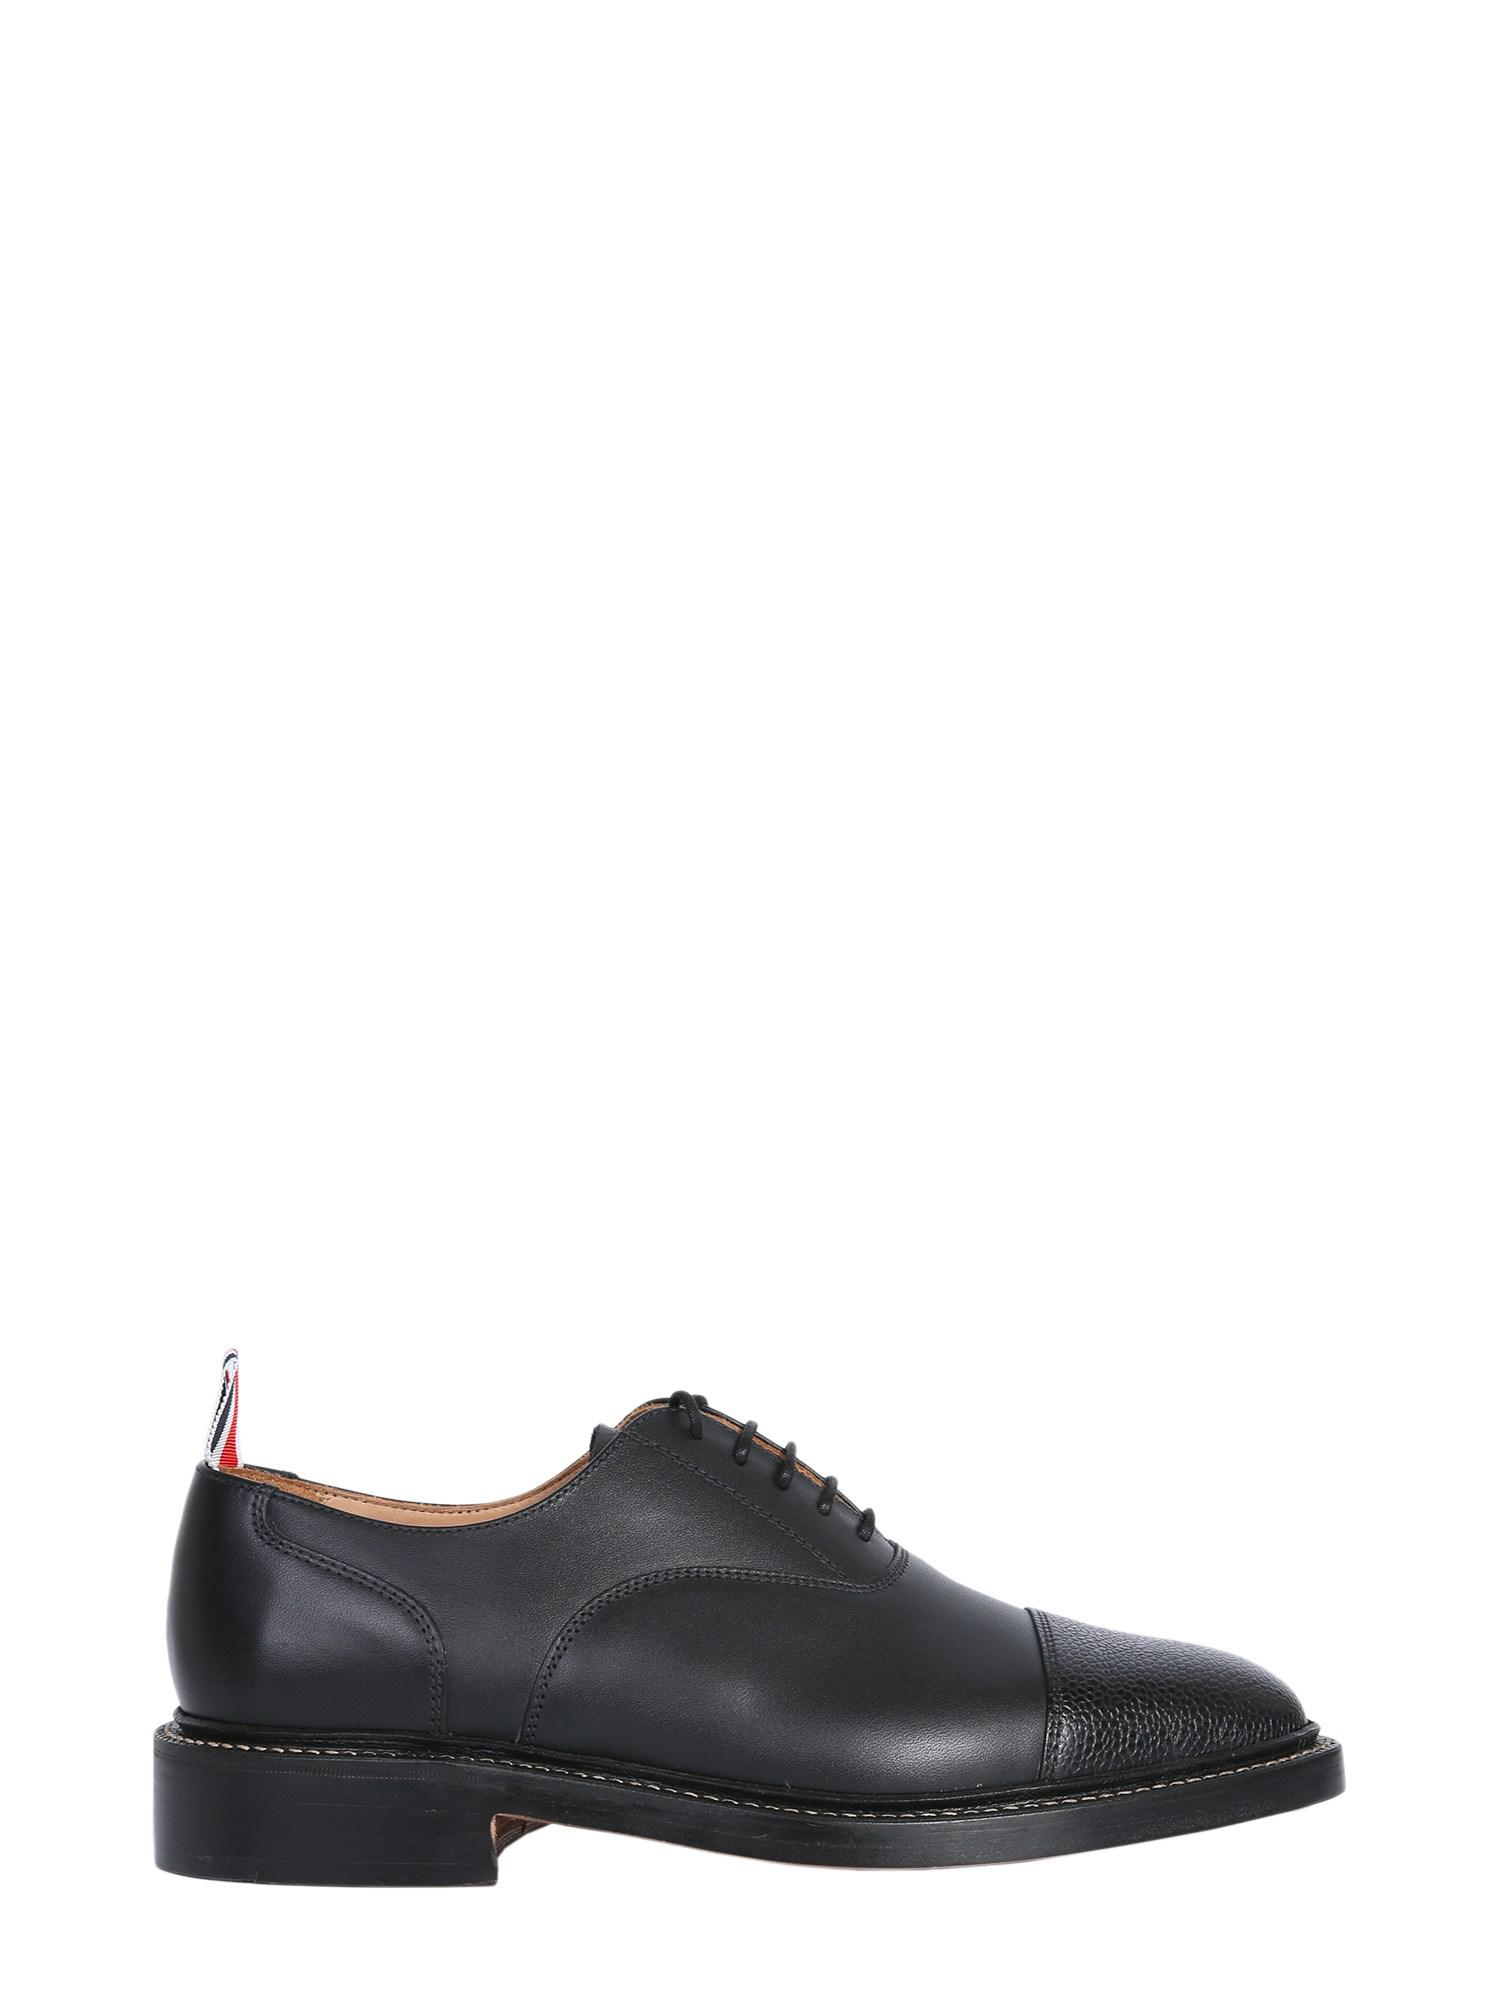 4e48eea328 Lyst - Thom Browne Leather Lace-up Shoes With Toe Cap in Black for Men